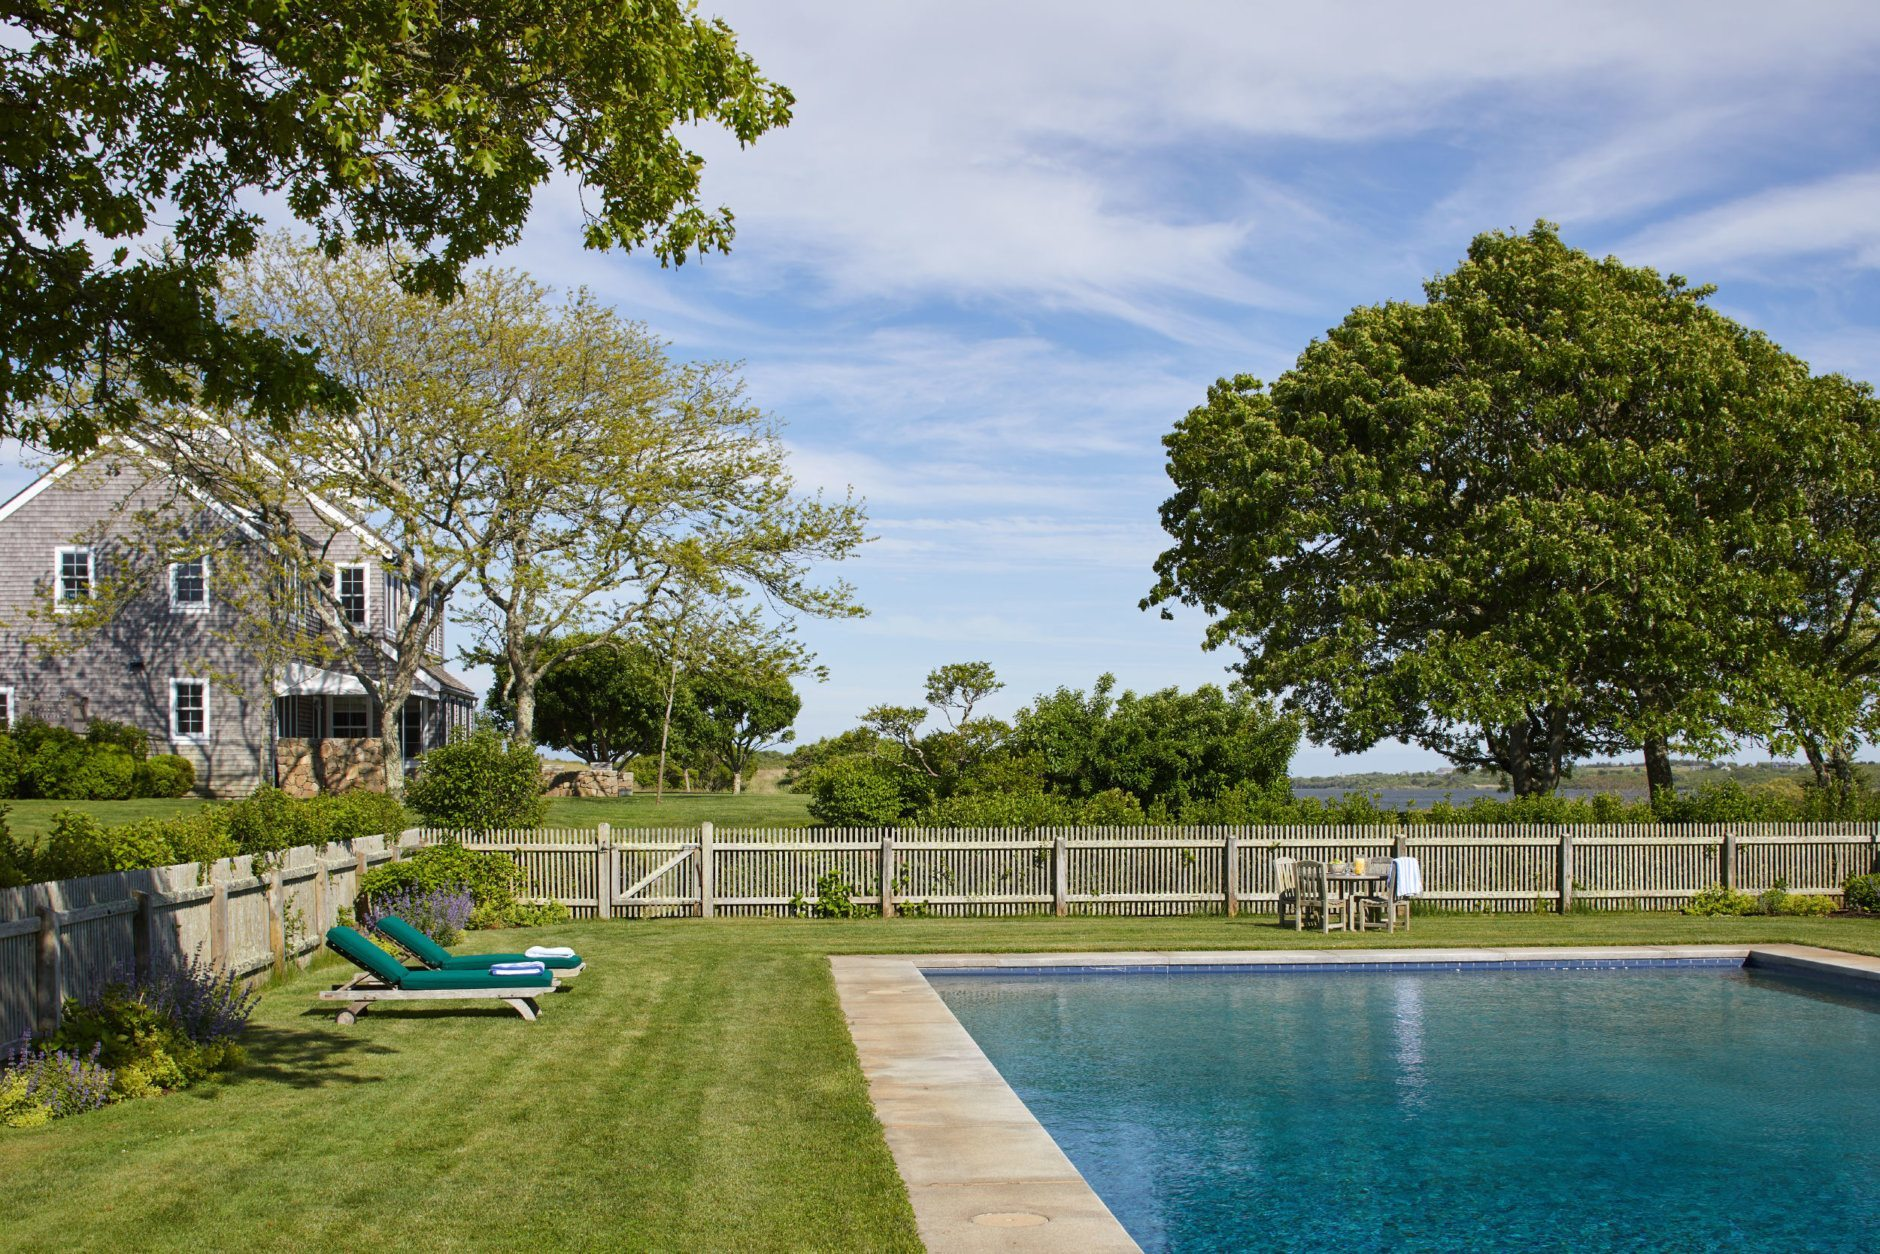 Red Gate Farm features a tennis court and a swimming pool. (Laura Moss Photography)